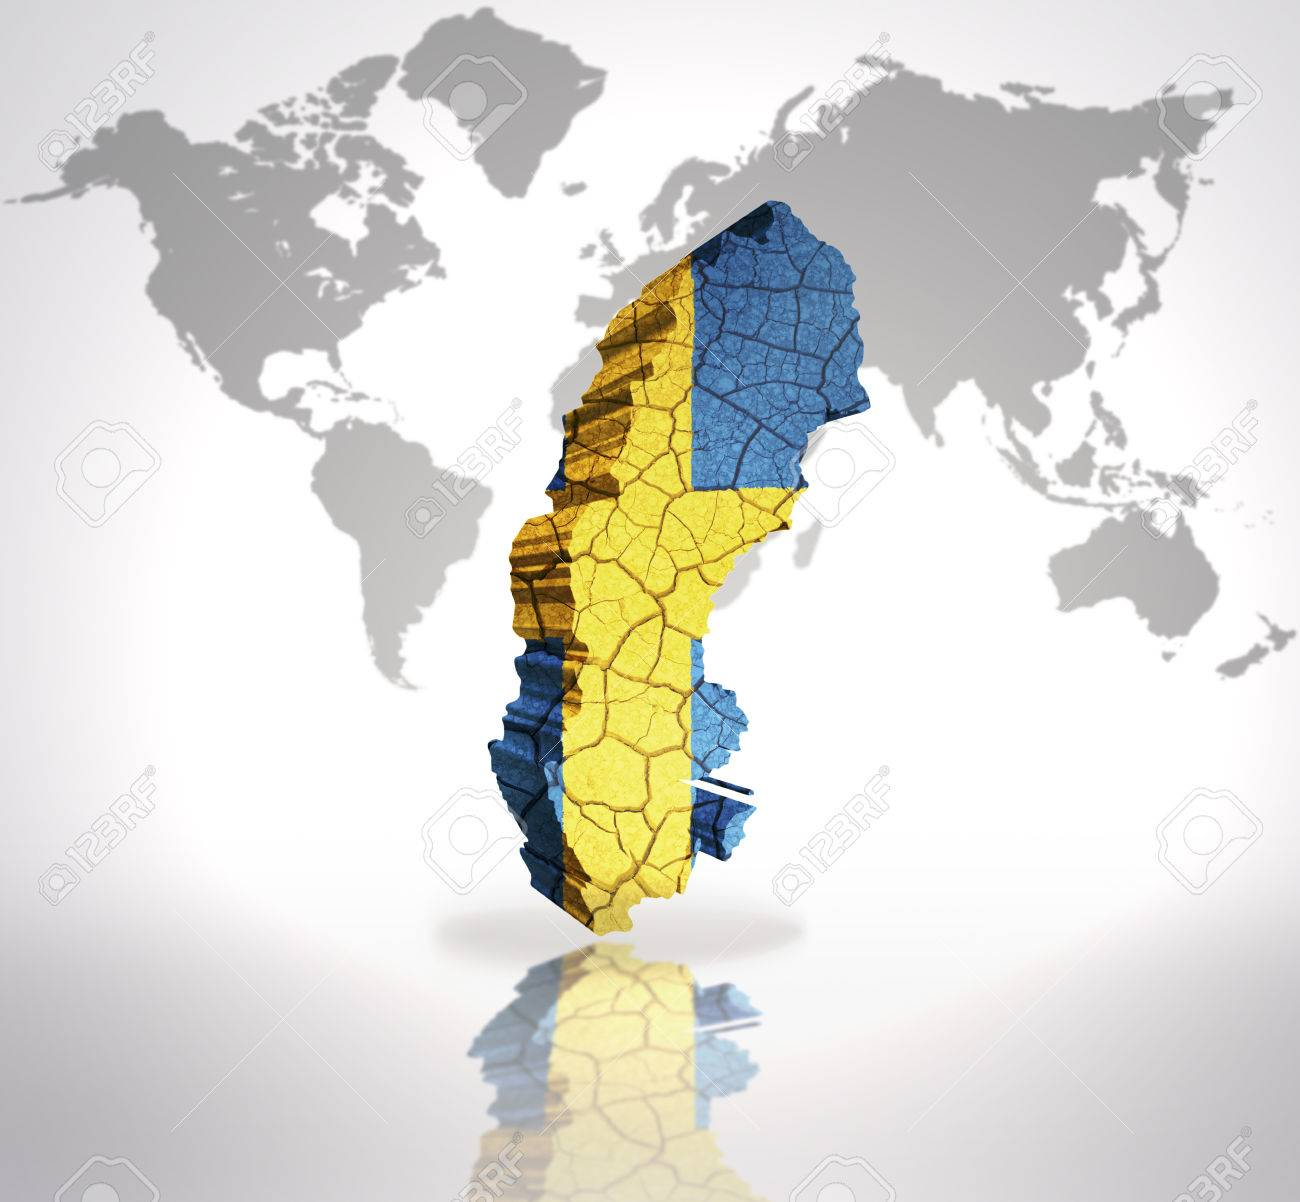 Map of sweden with swedish flag on a world map background stock map of sweden with swedish flag on a world map background stock photo 32675327 gumiabroncs Image collections